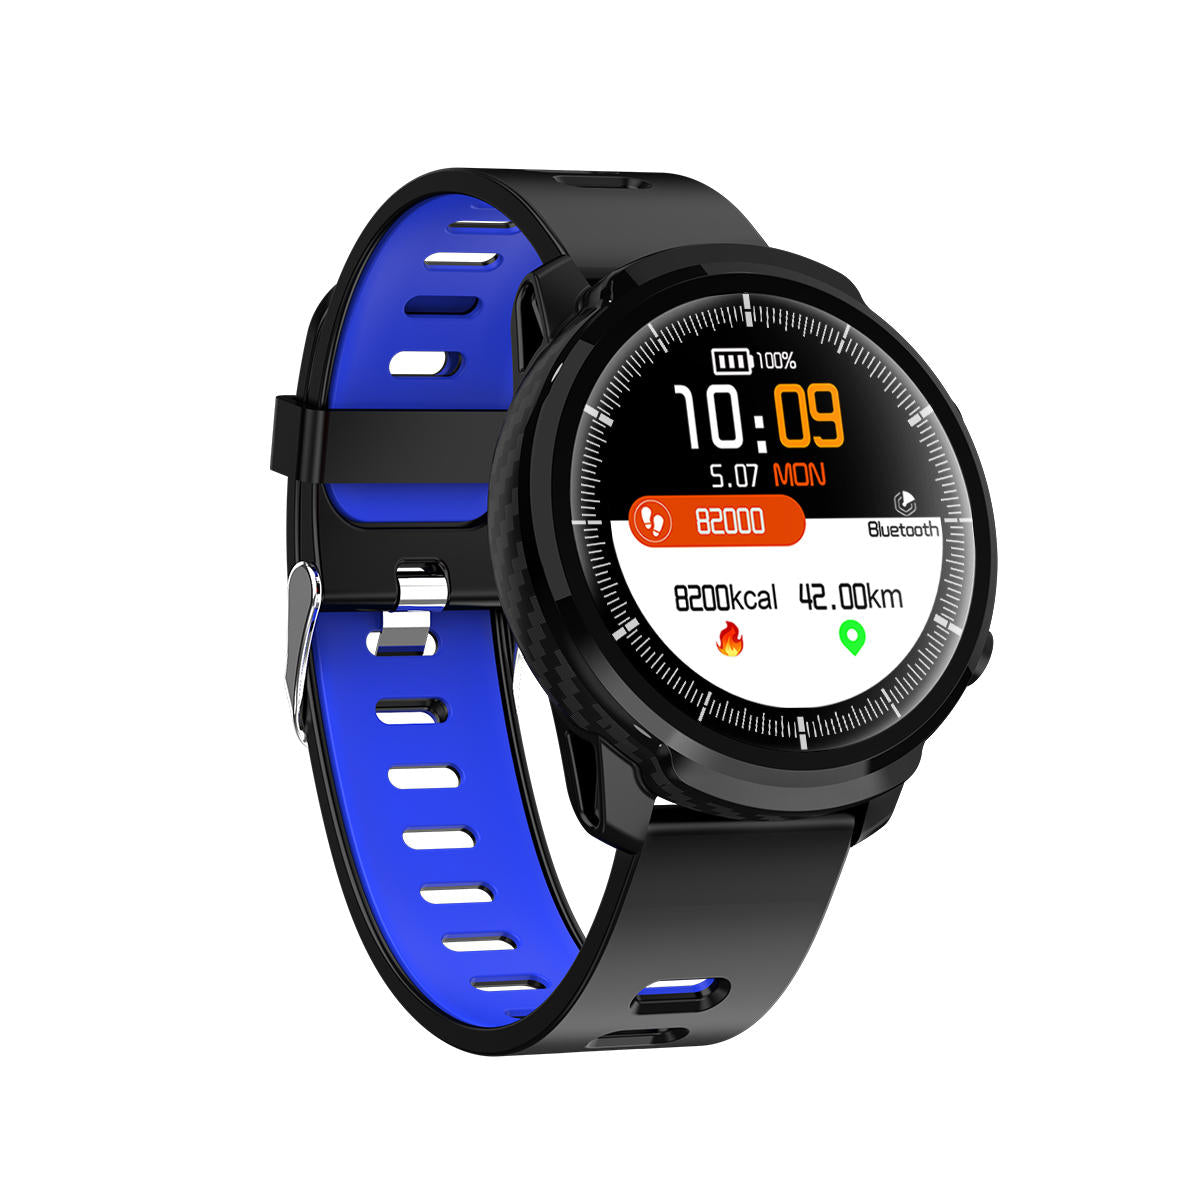 Bakeey S10 Full Touch HD Screen IP67 Wristband Blood Pressure and Oxygen Monitor Weather Display Smart Watch - Blue